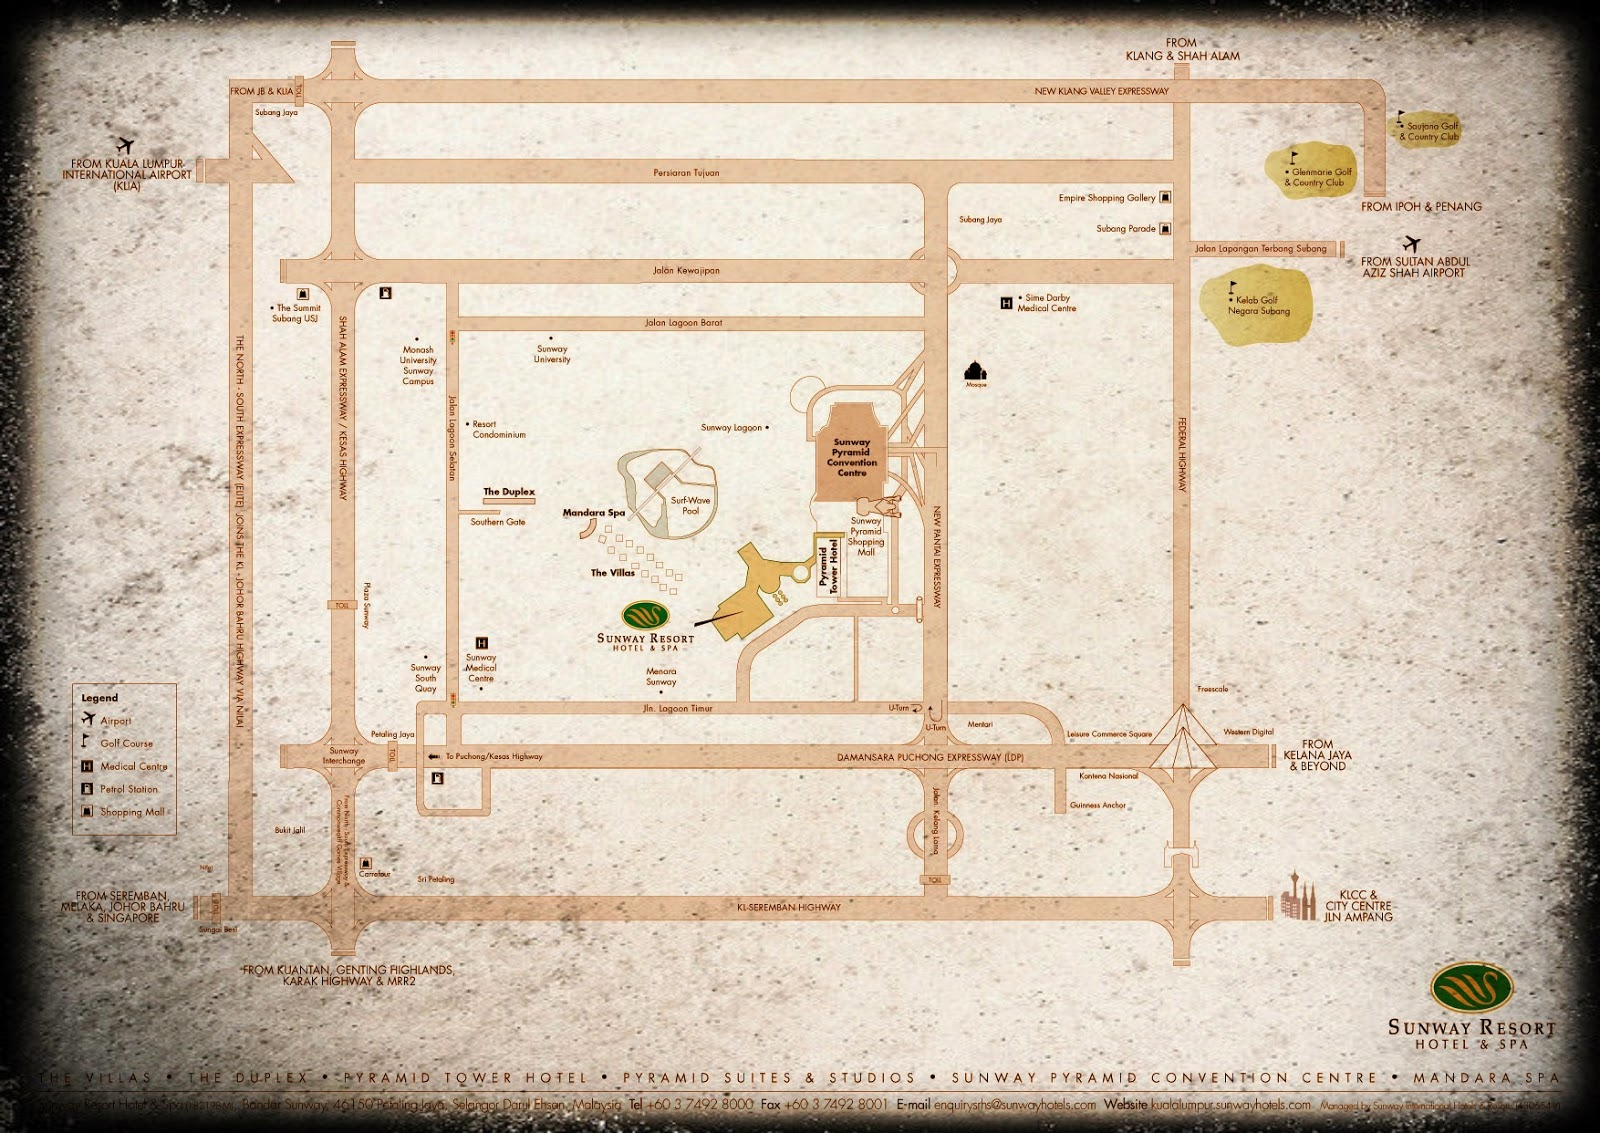 Pyramid Tower Hotel location map